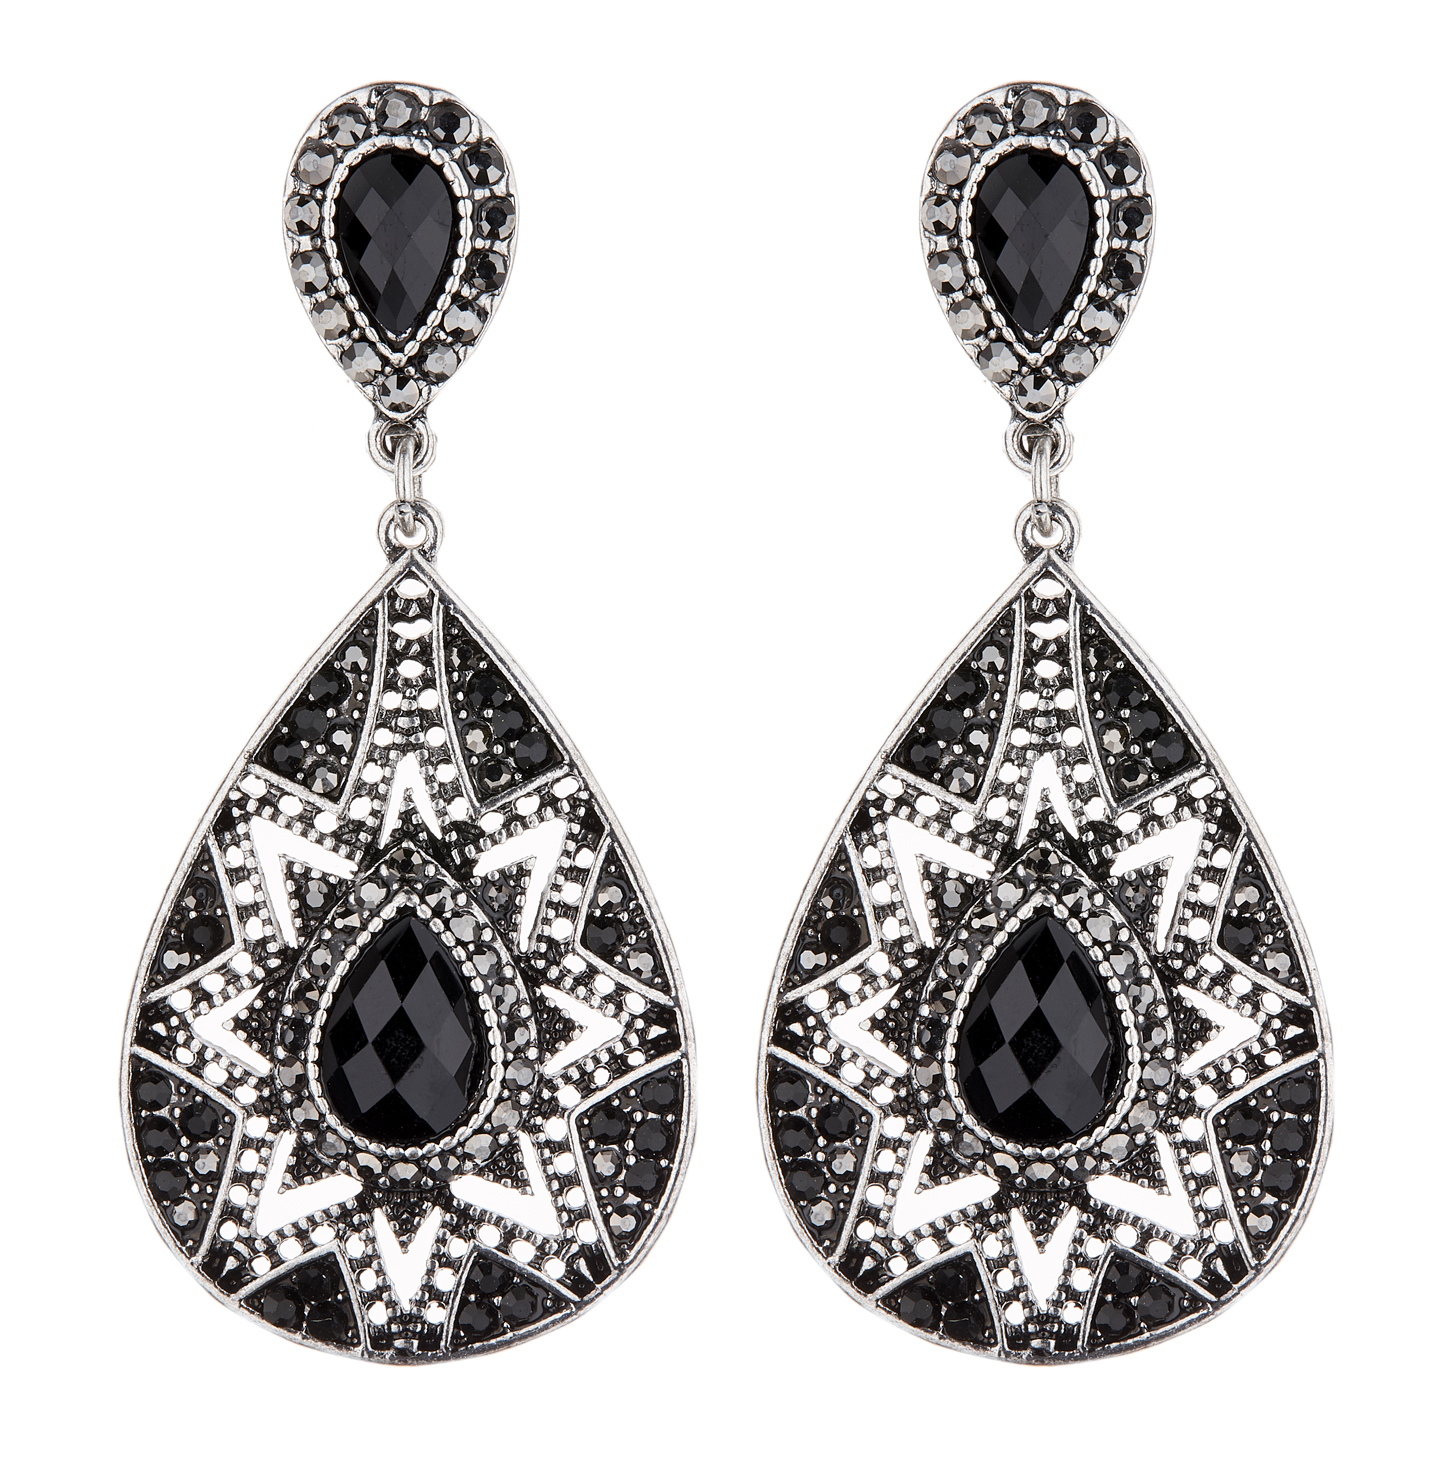 Clip On Earrings - Bisa - antique silver earring with black crystals